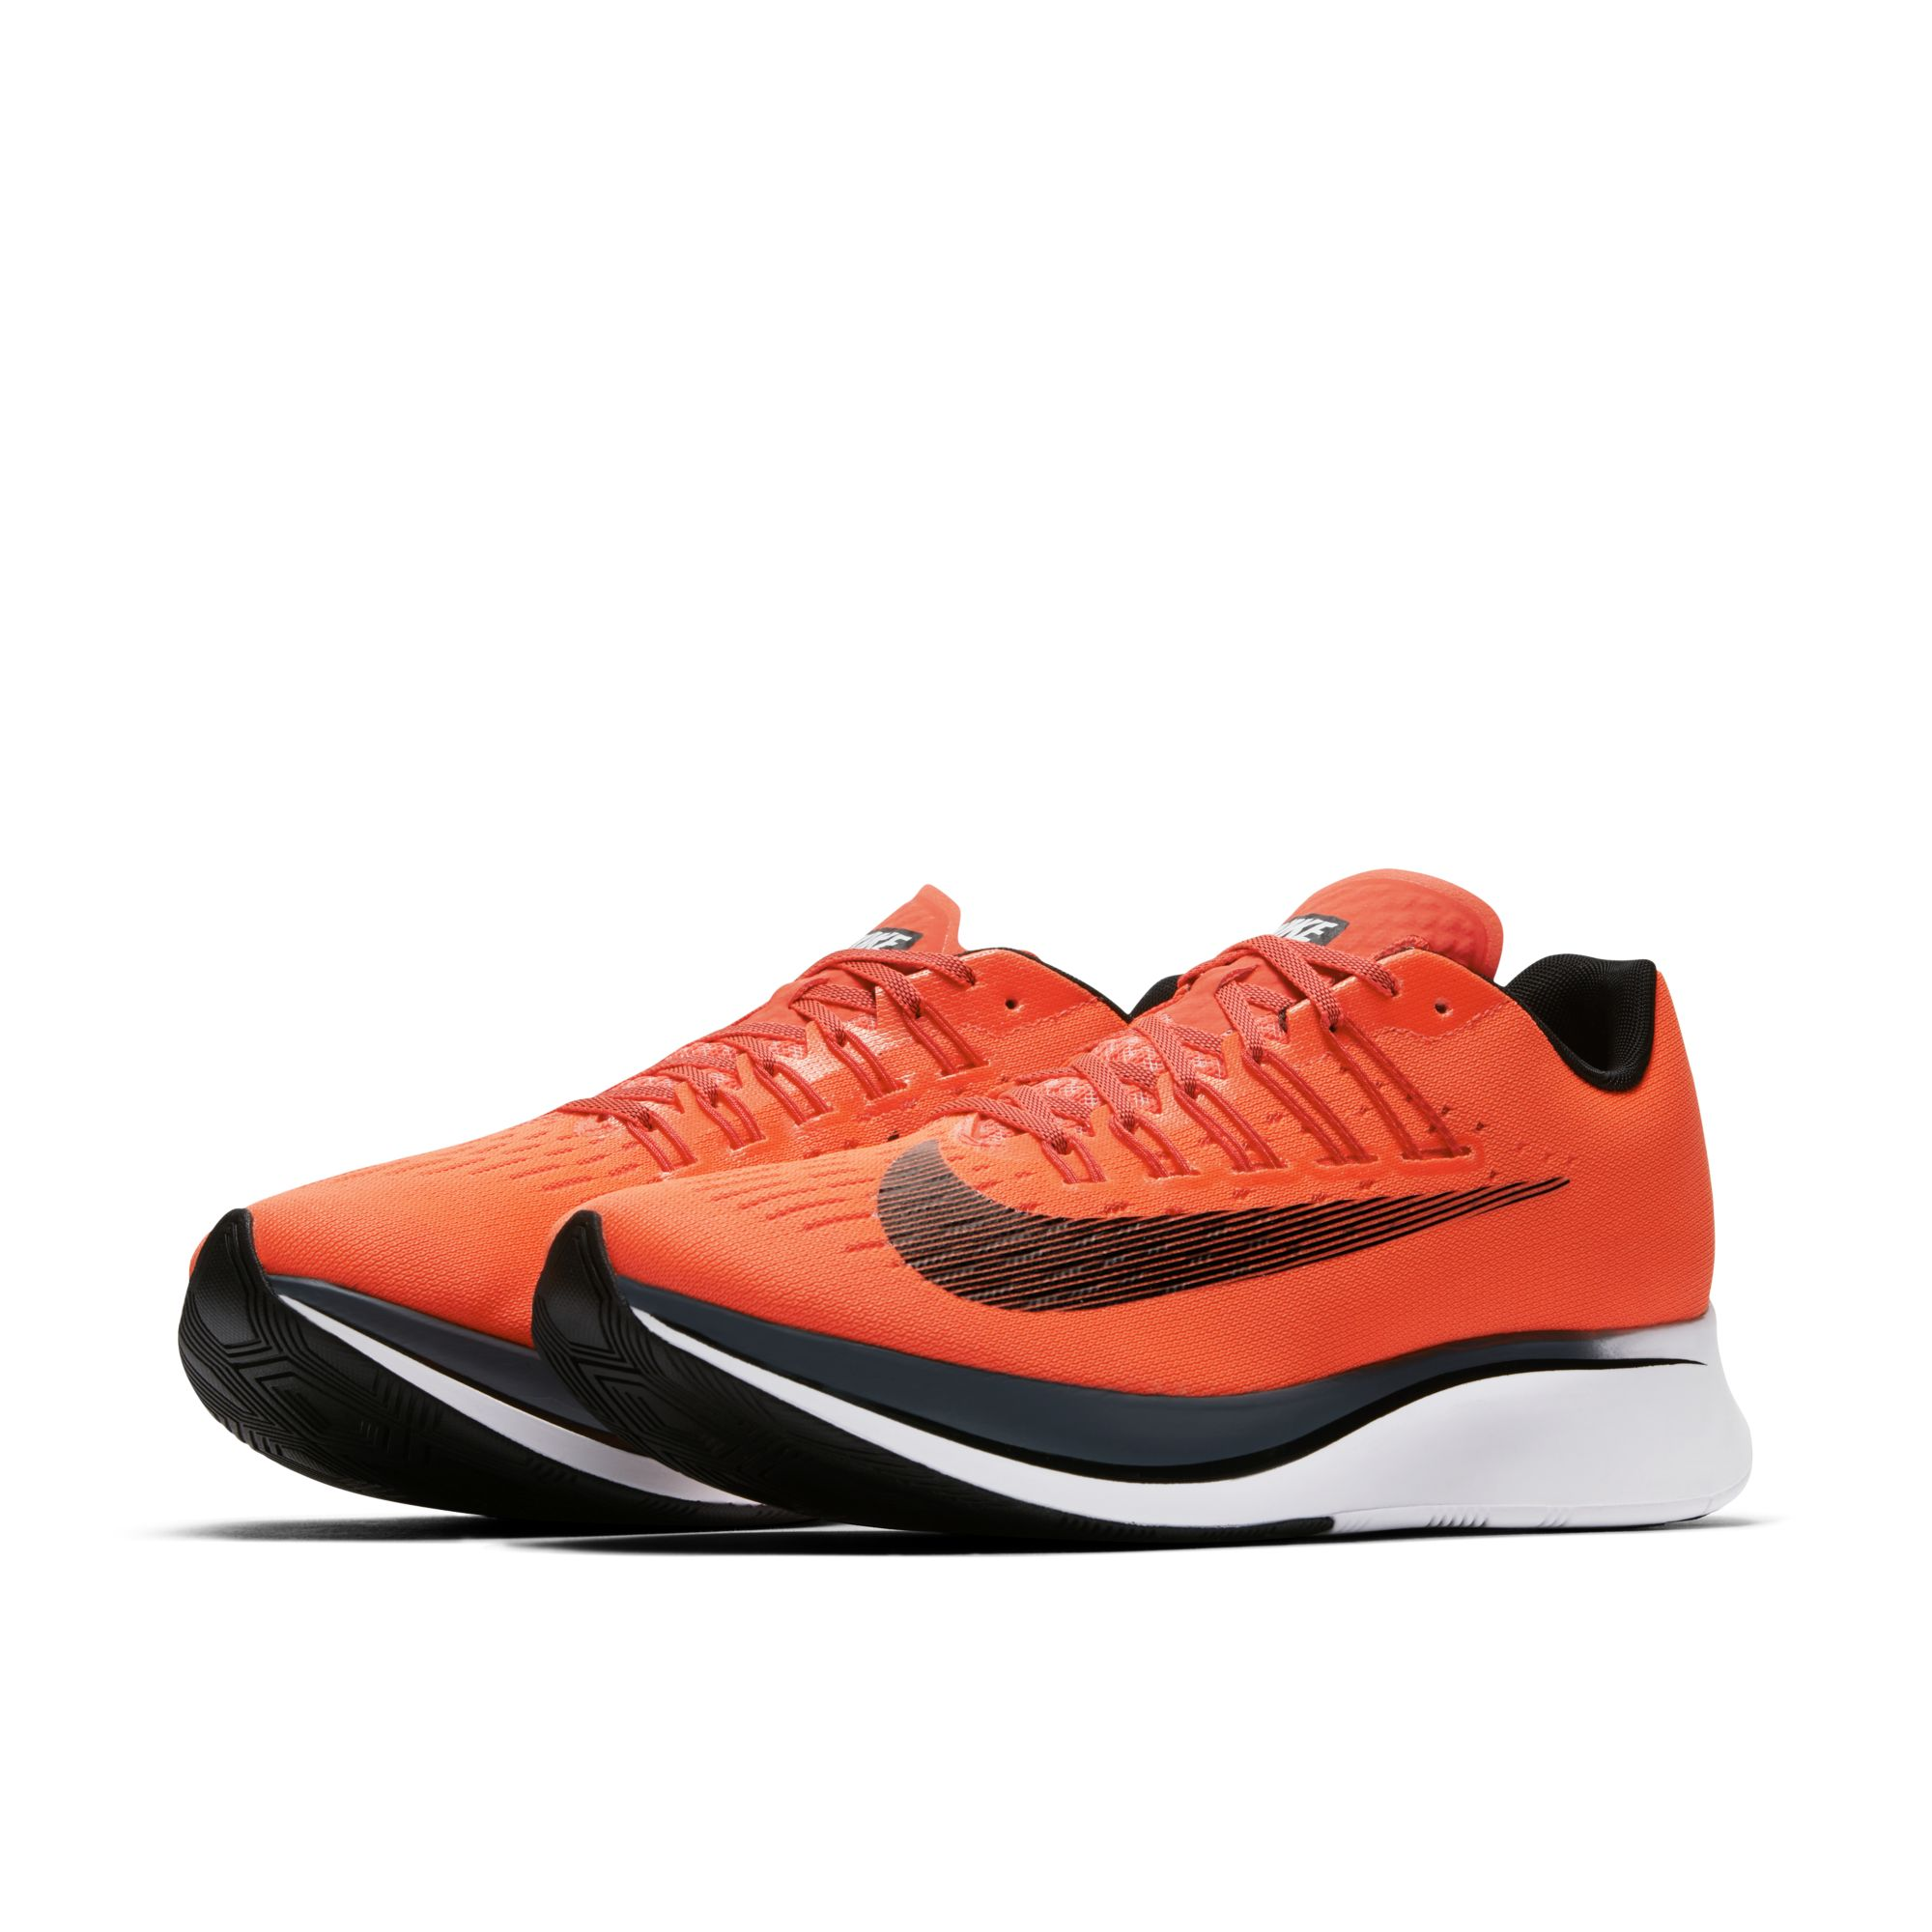 67ab98cb62f WearTesters - Page 185 of 973 - Sneaker Performance Reviews ...